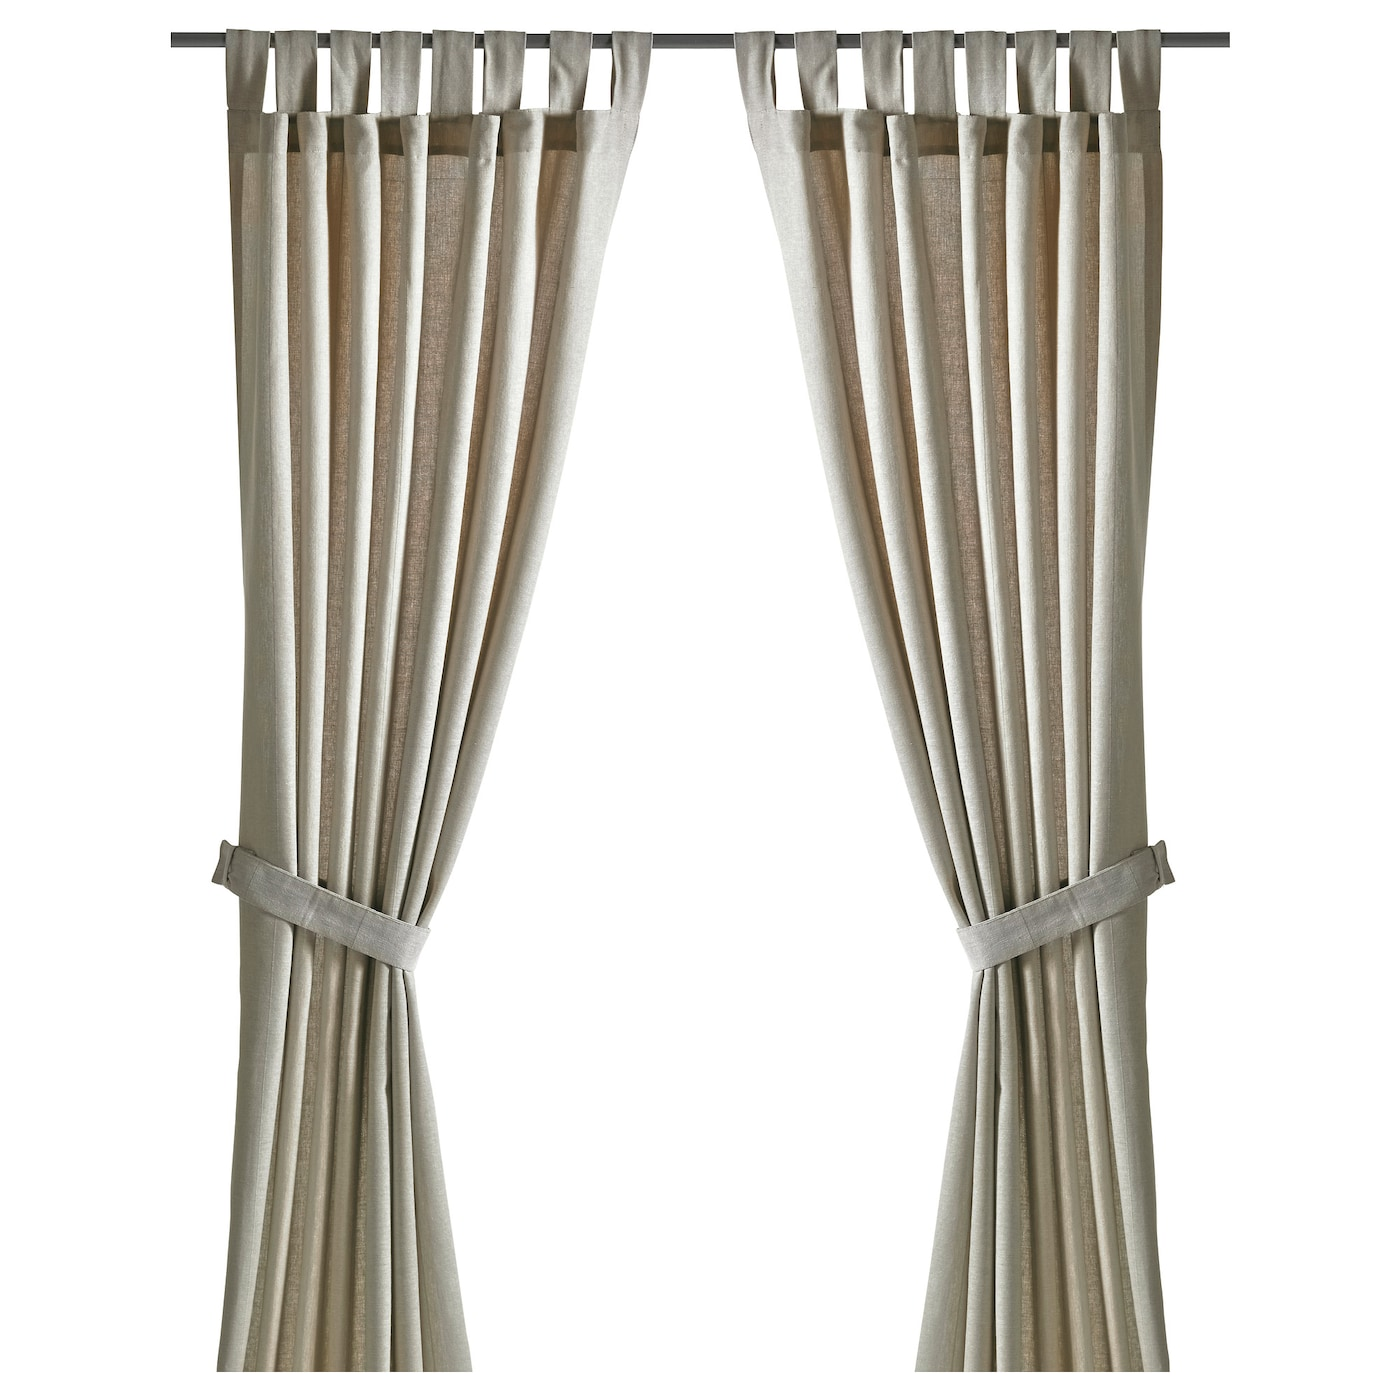 Ikea Lenda Curtains With Tie Backs 1 Pair